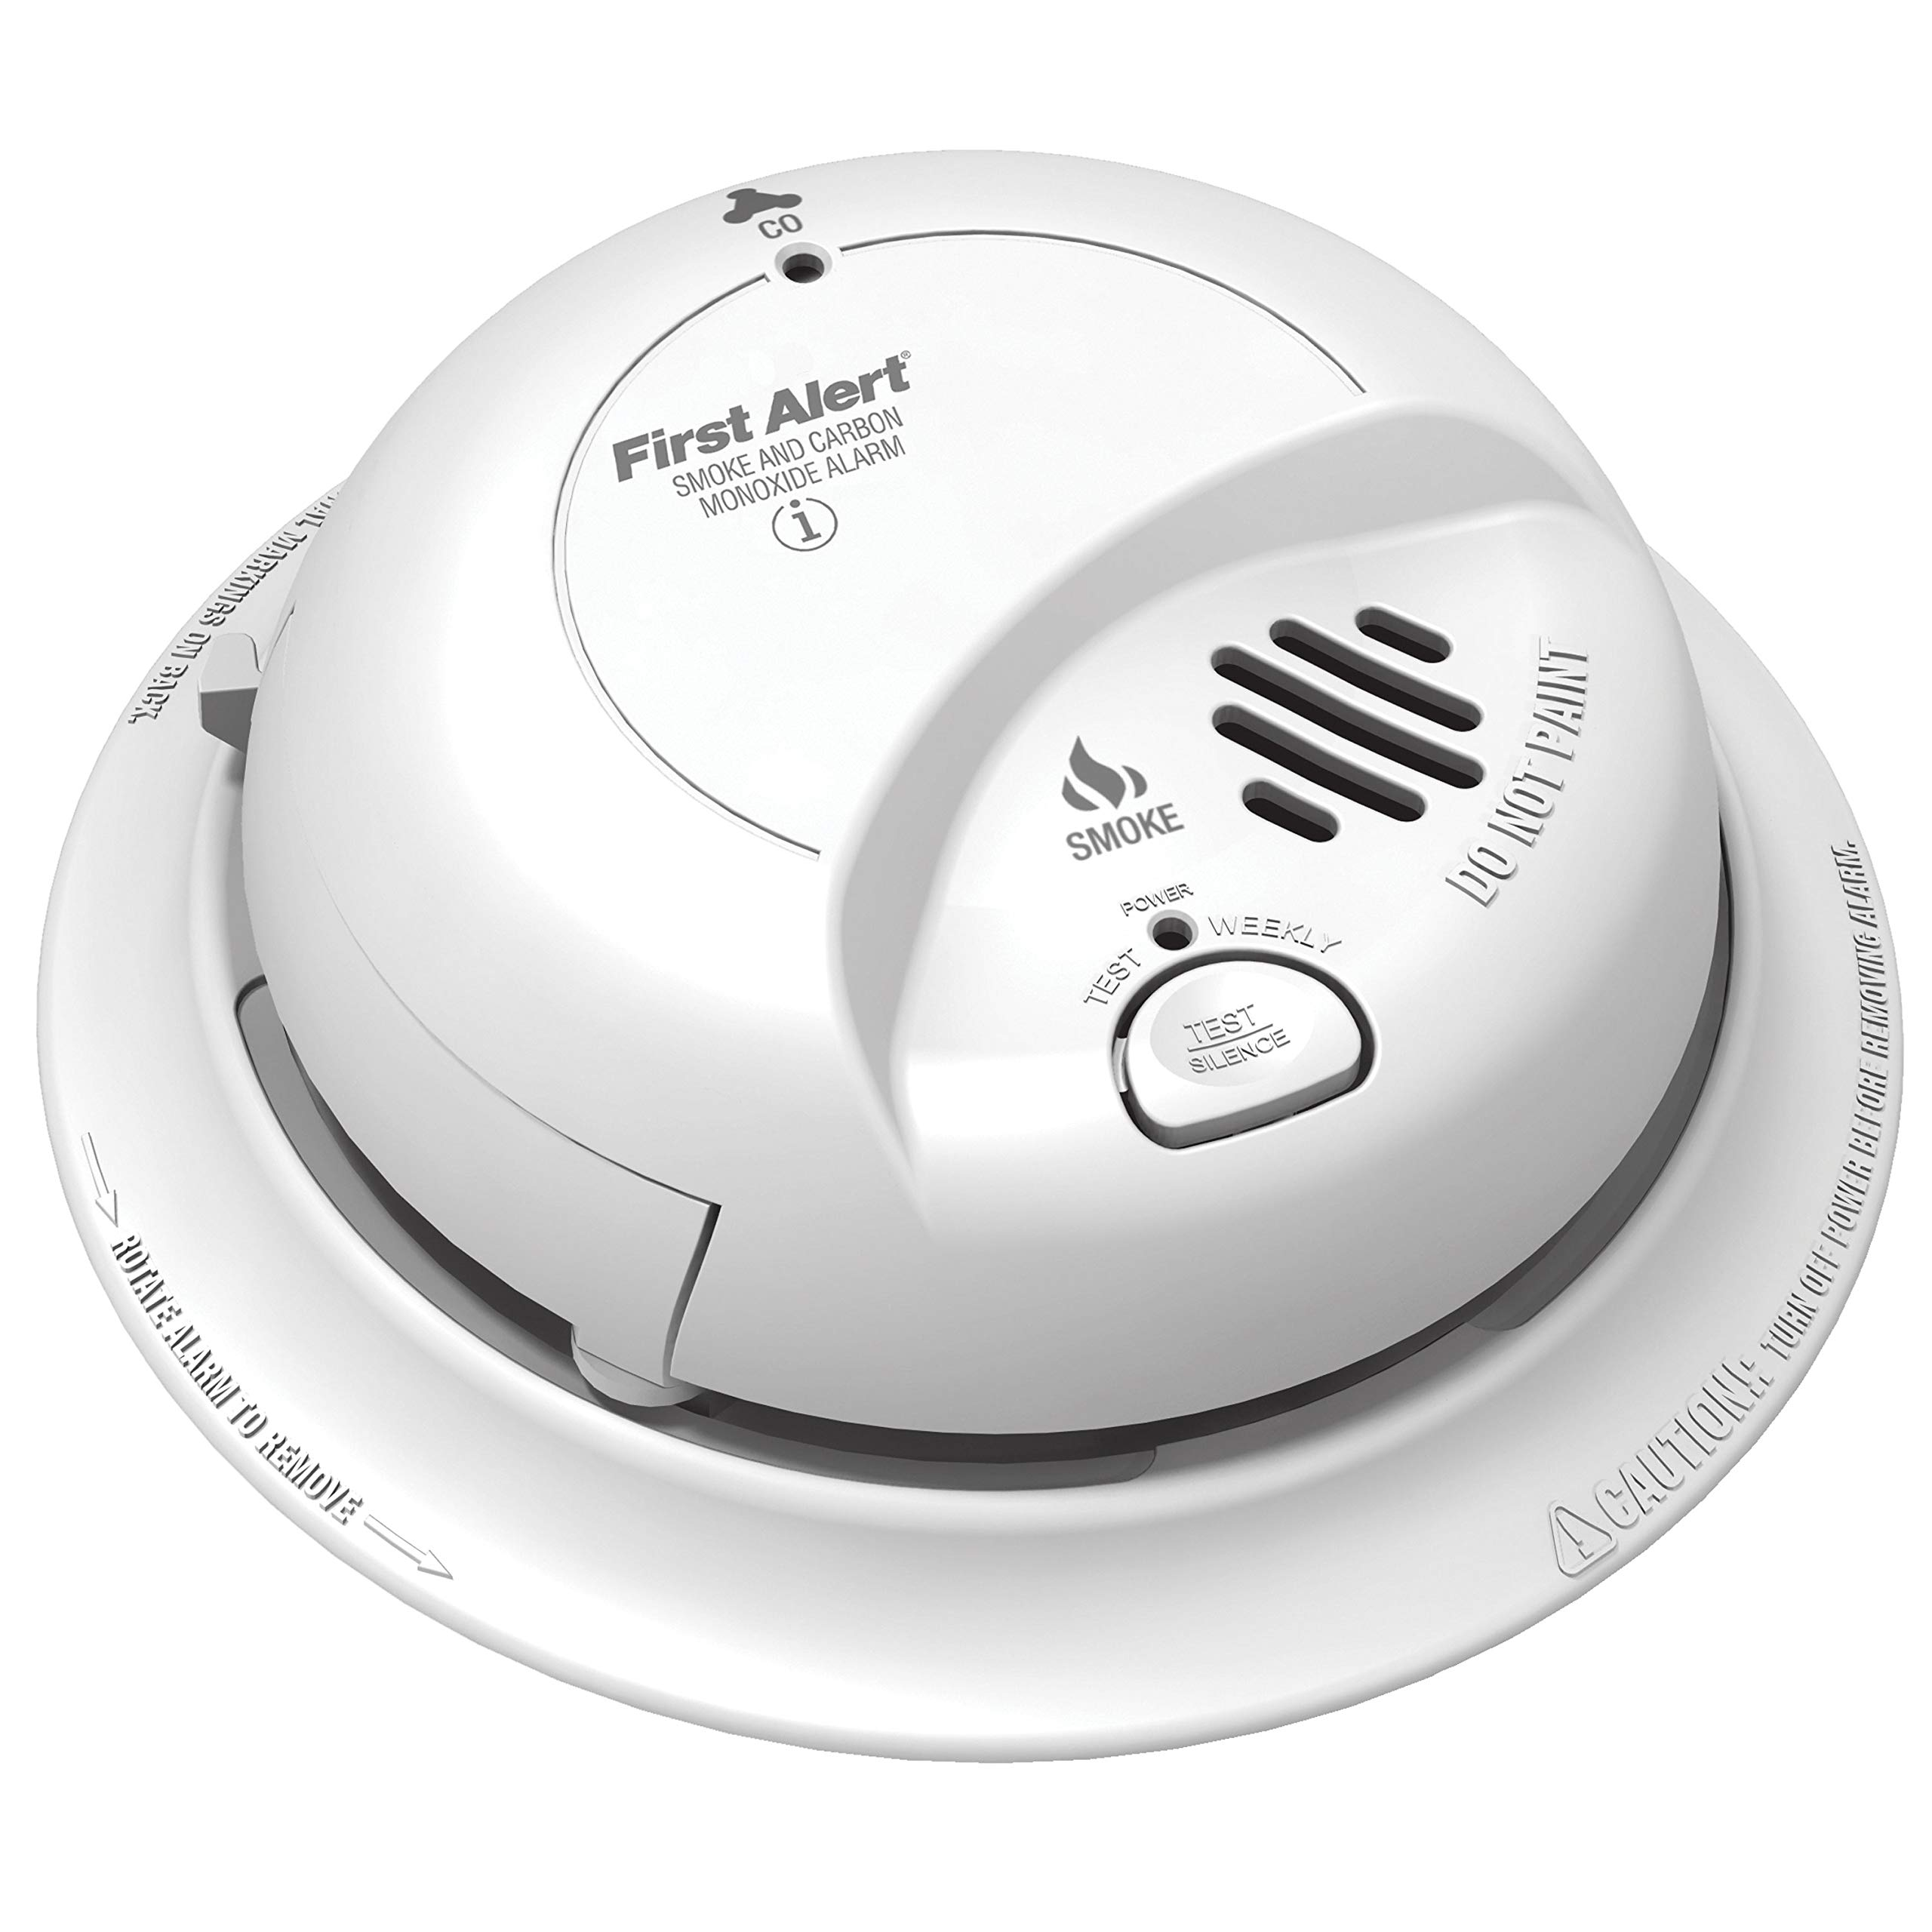 First Alert BRK SC-9120B Hardwired Smoke and Carbon Monoxide (CO) Detector with Battery Backup